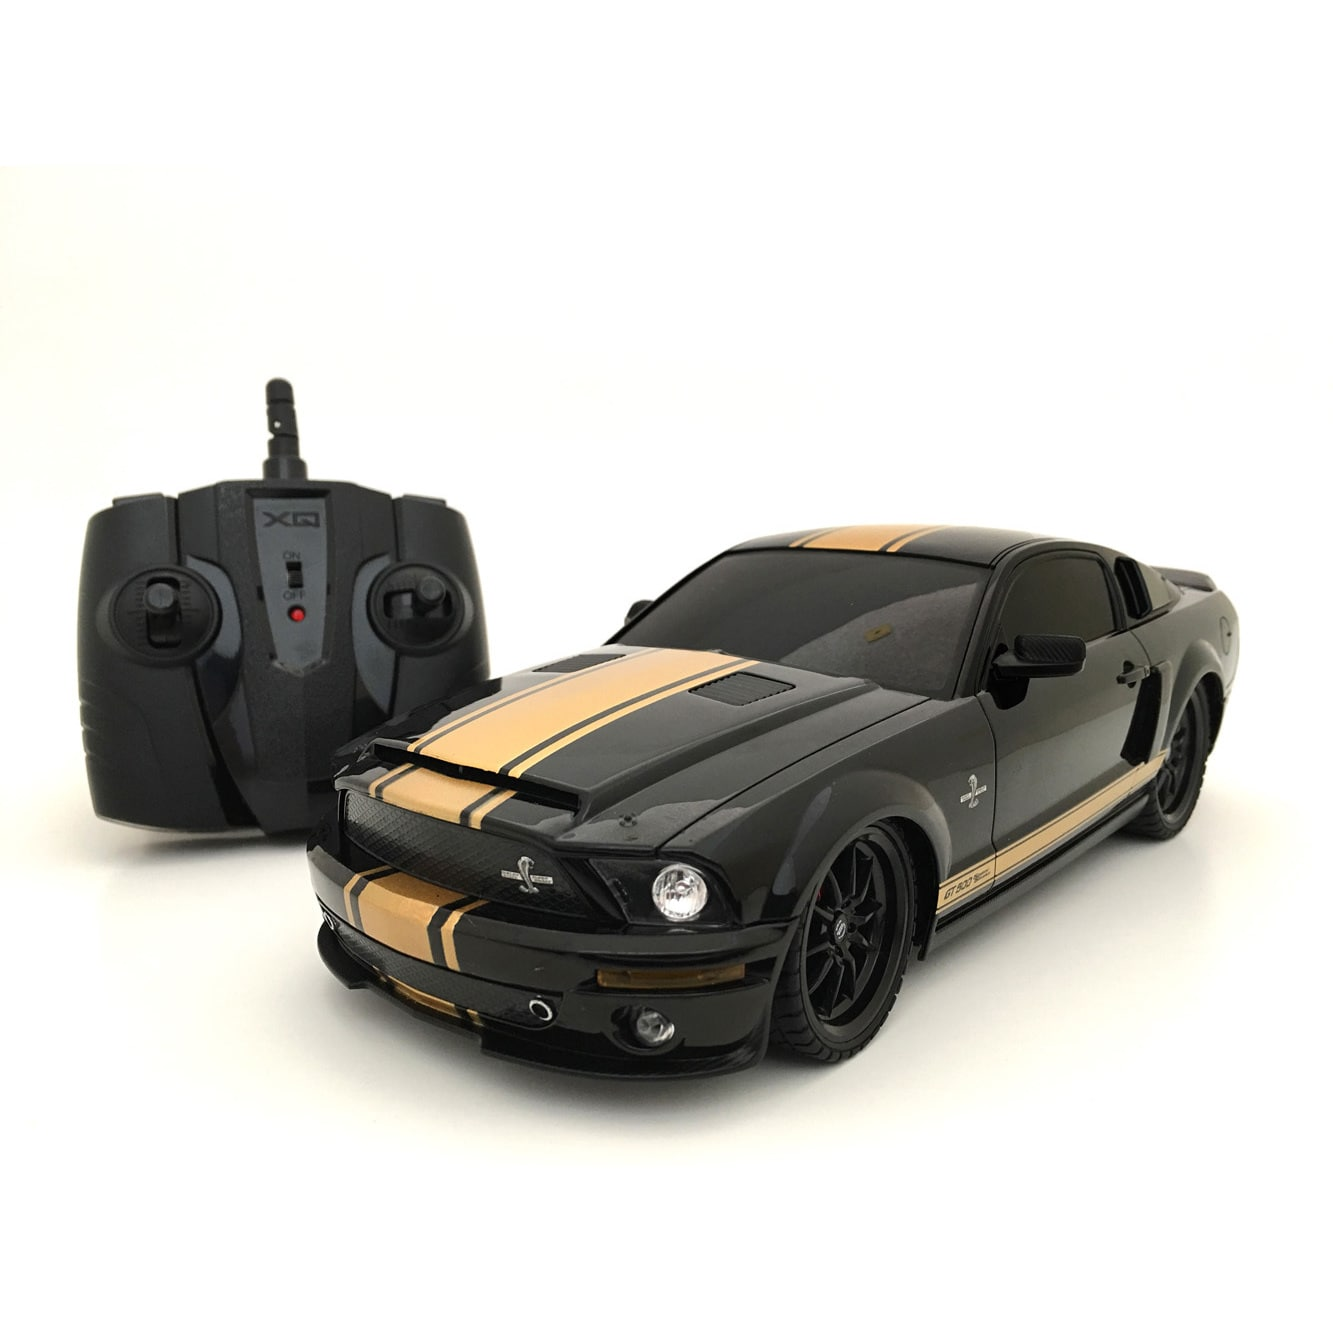 Ford Mustang Shelby GT350 2.4 GHz Remote Control 1:18-sca...